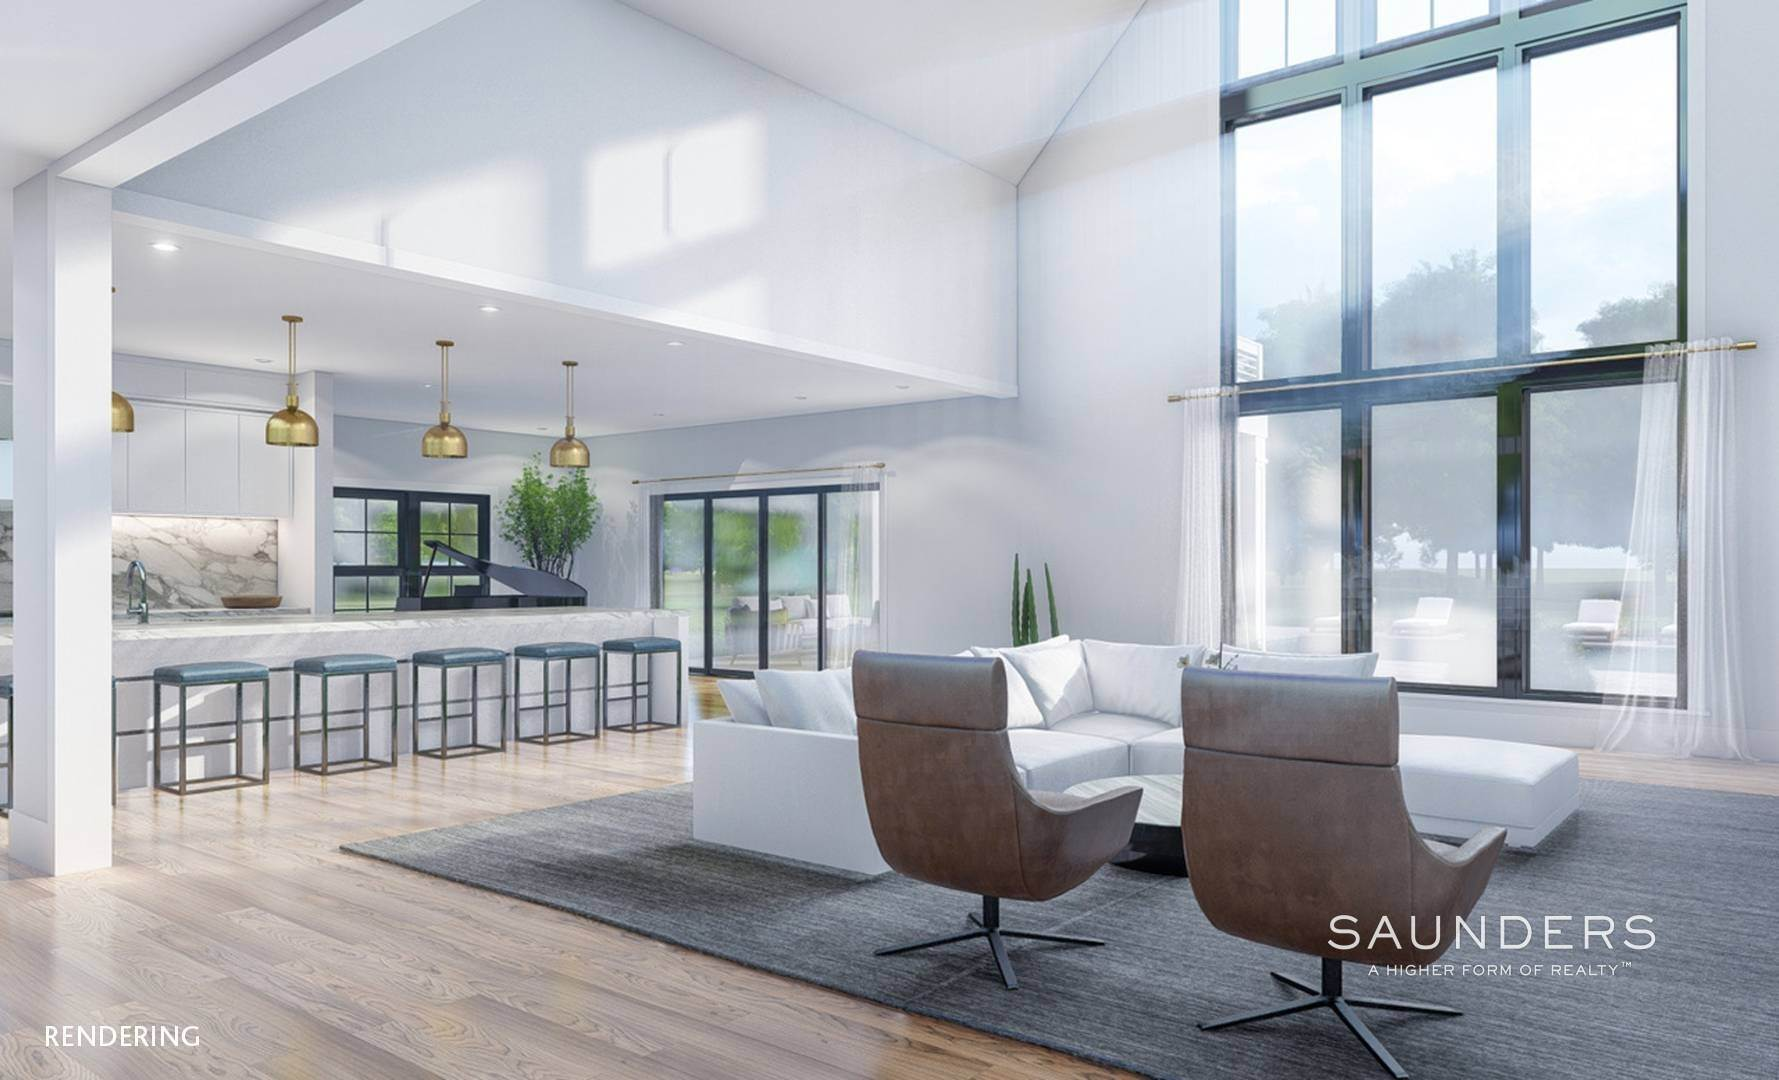 2. Single Family Homes for Sale at New Construction In Sagaponack With Pool 26 Forest Crossing, Sagaponack, Southampton Town, NY 11962